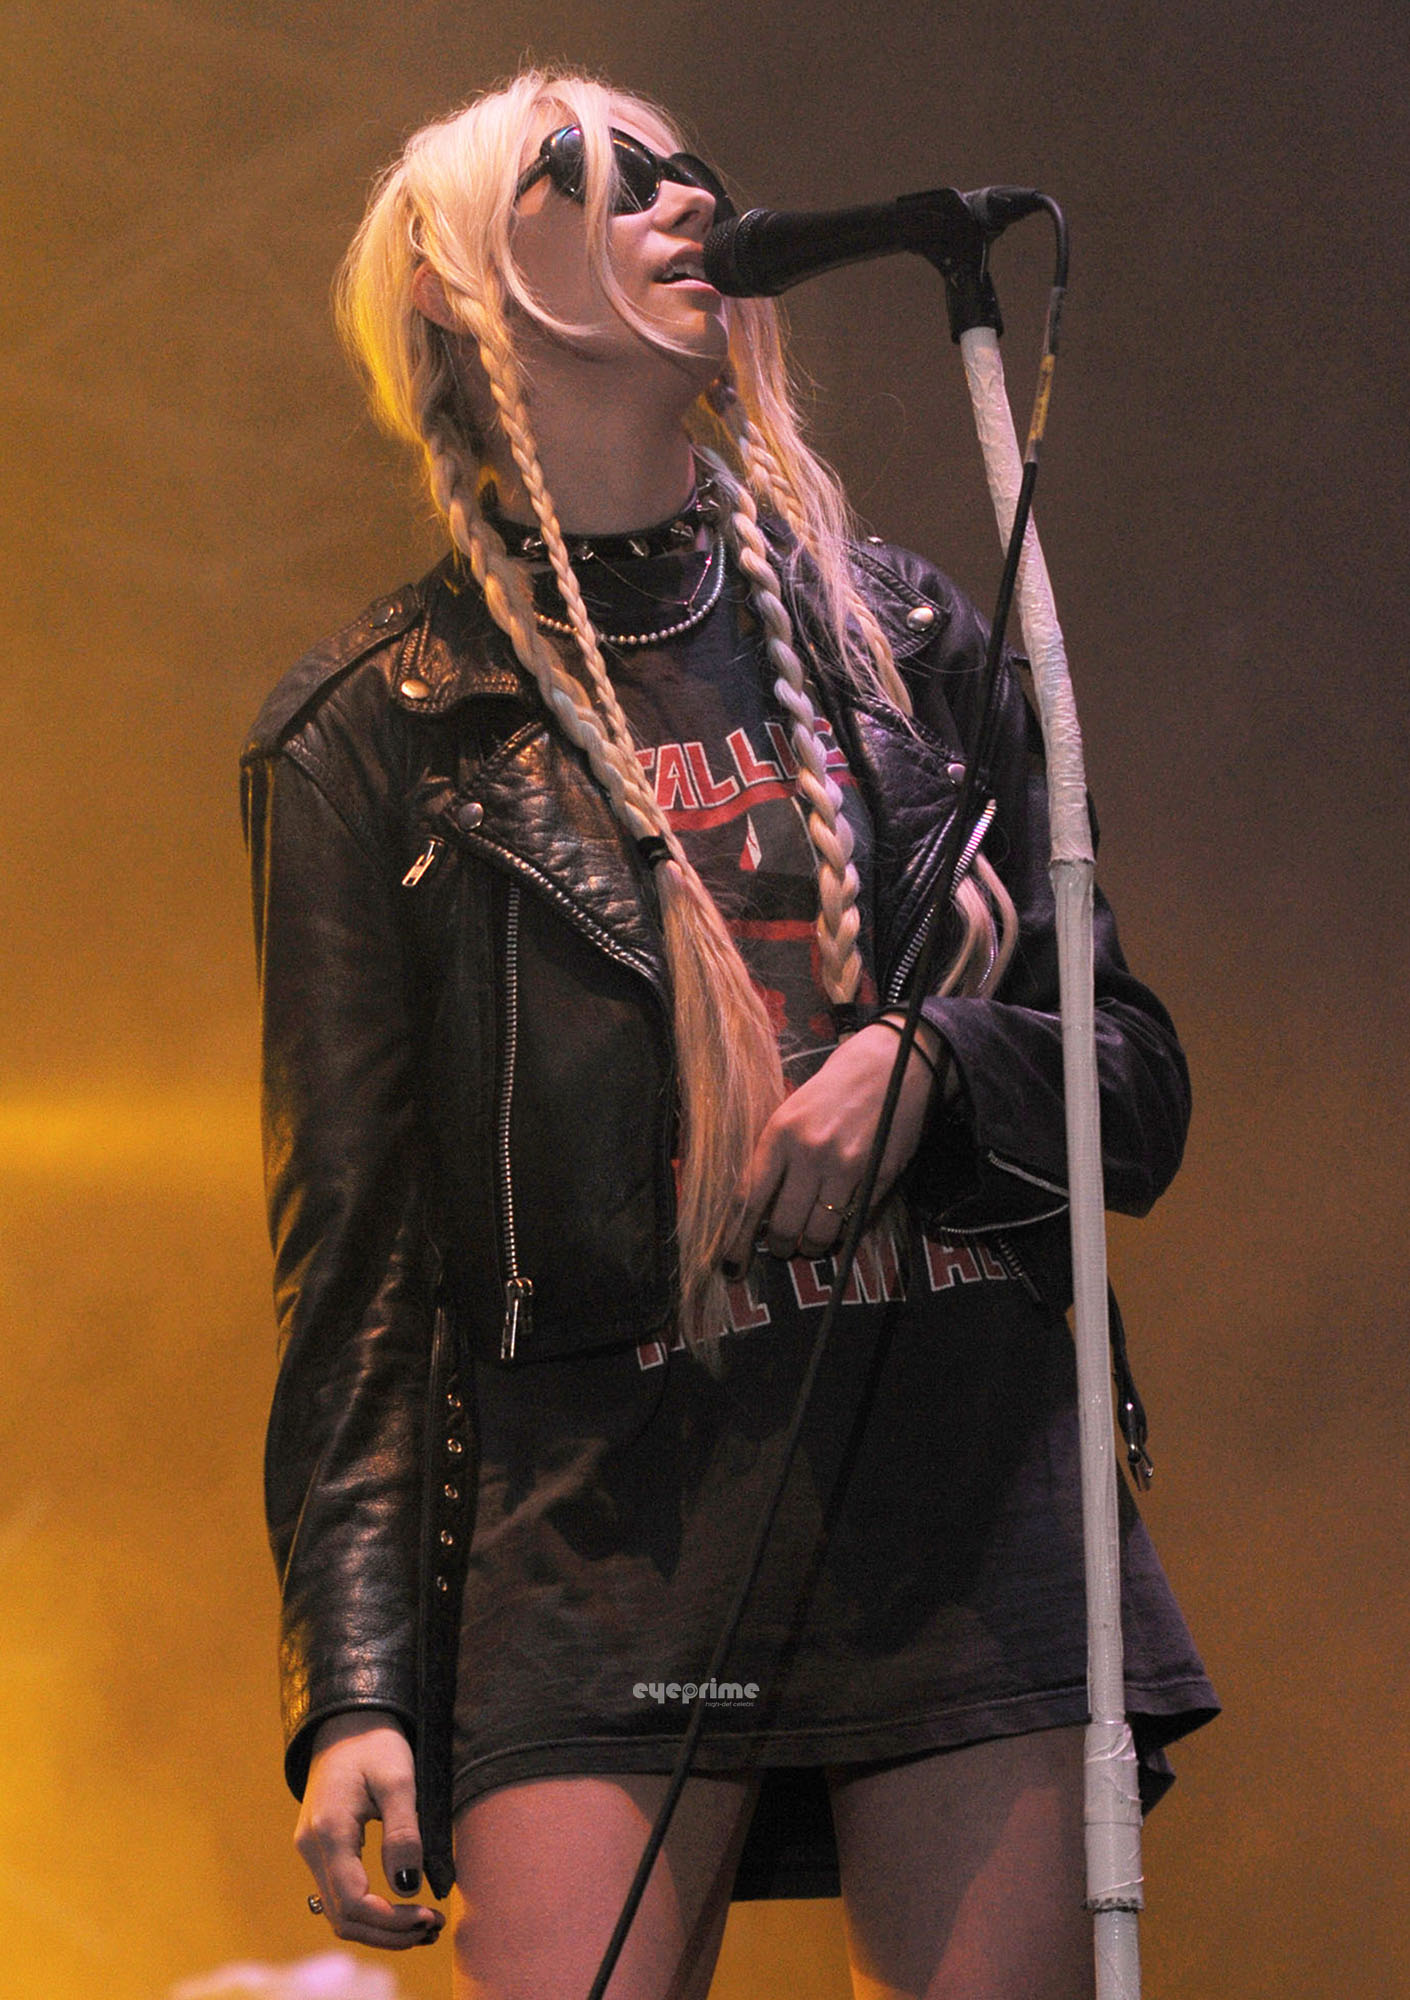 Taylor Momsen seen around during Wireless Festival in London, July 3